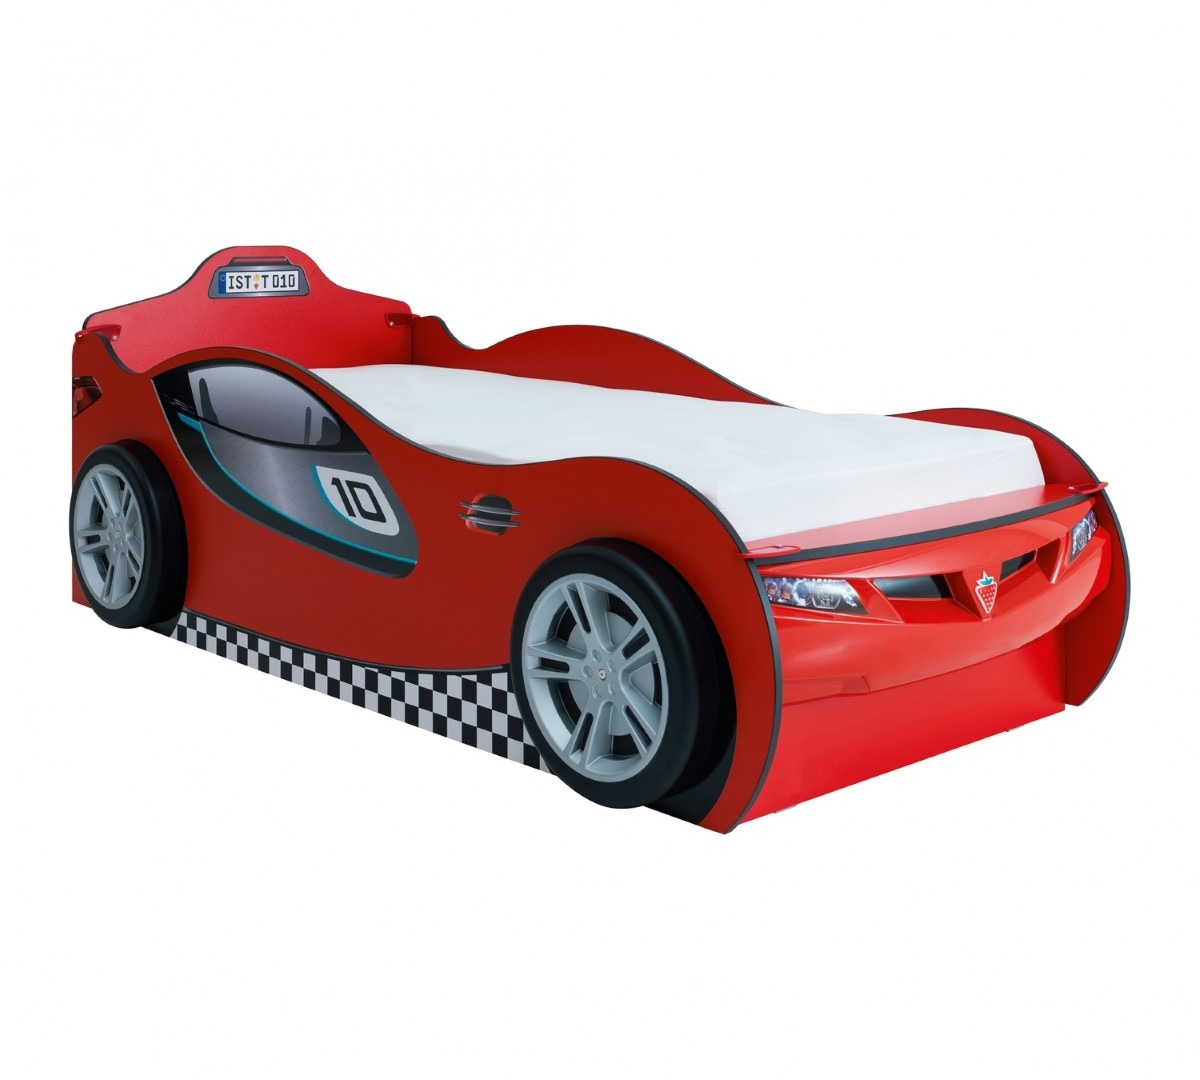 Racer-Turbo-Friend-Bed1